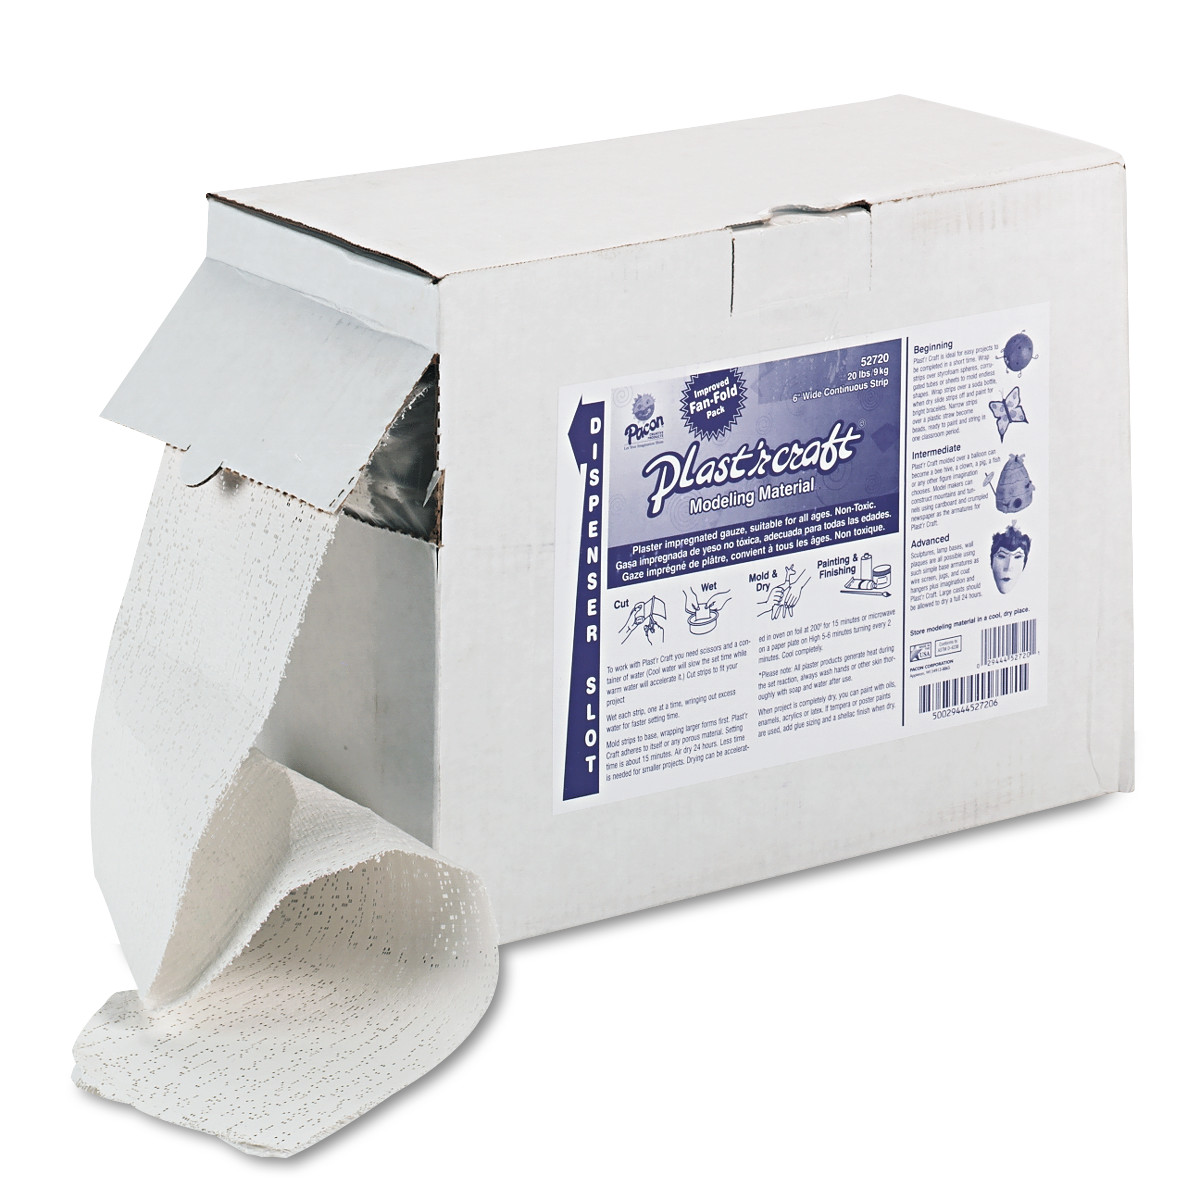 Pacon Plast'r Craft, White, 20 lbs